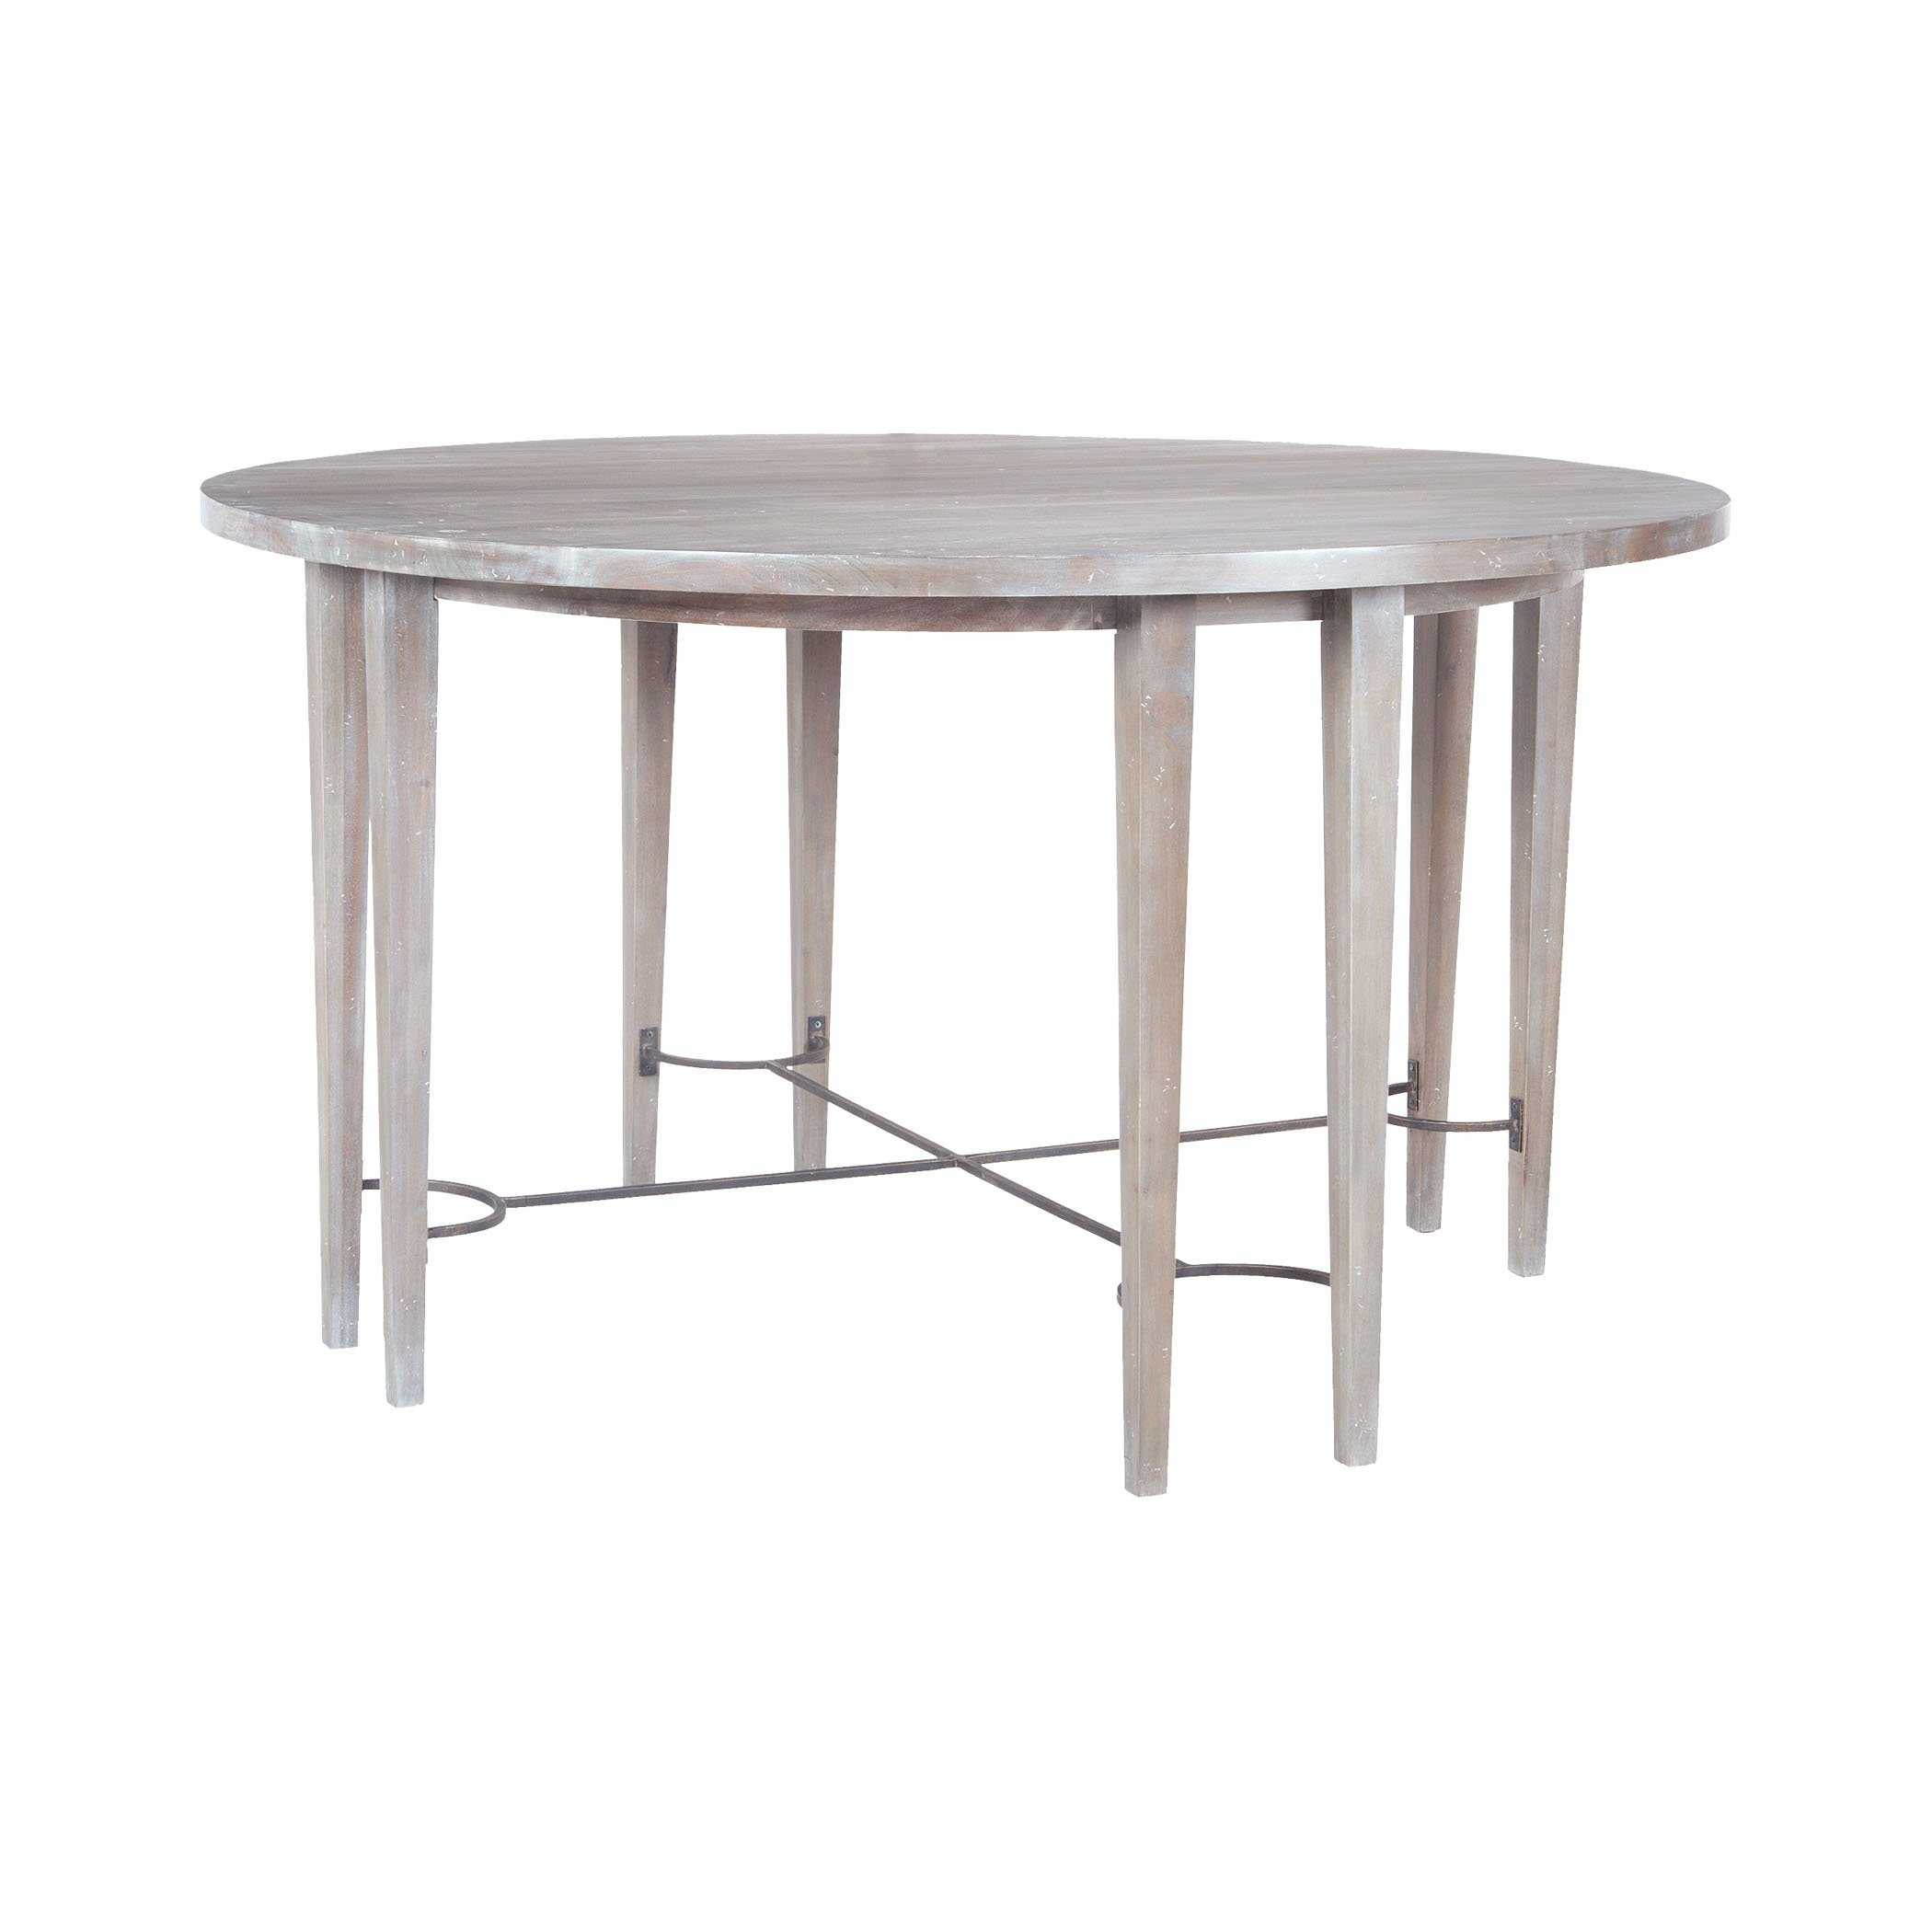 Dimond Home 7011-042 Empire Stretcher Entry Table, 54'' x 54'' x 31''